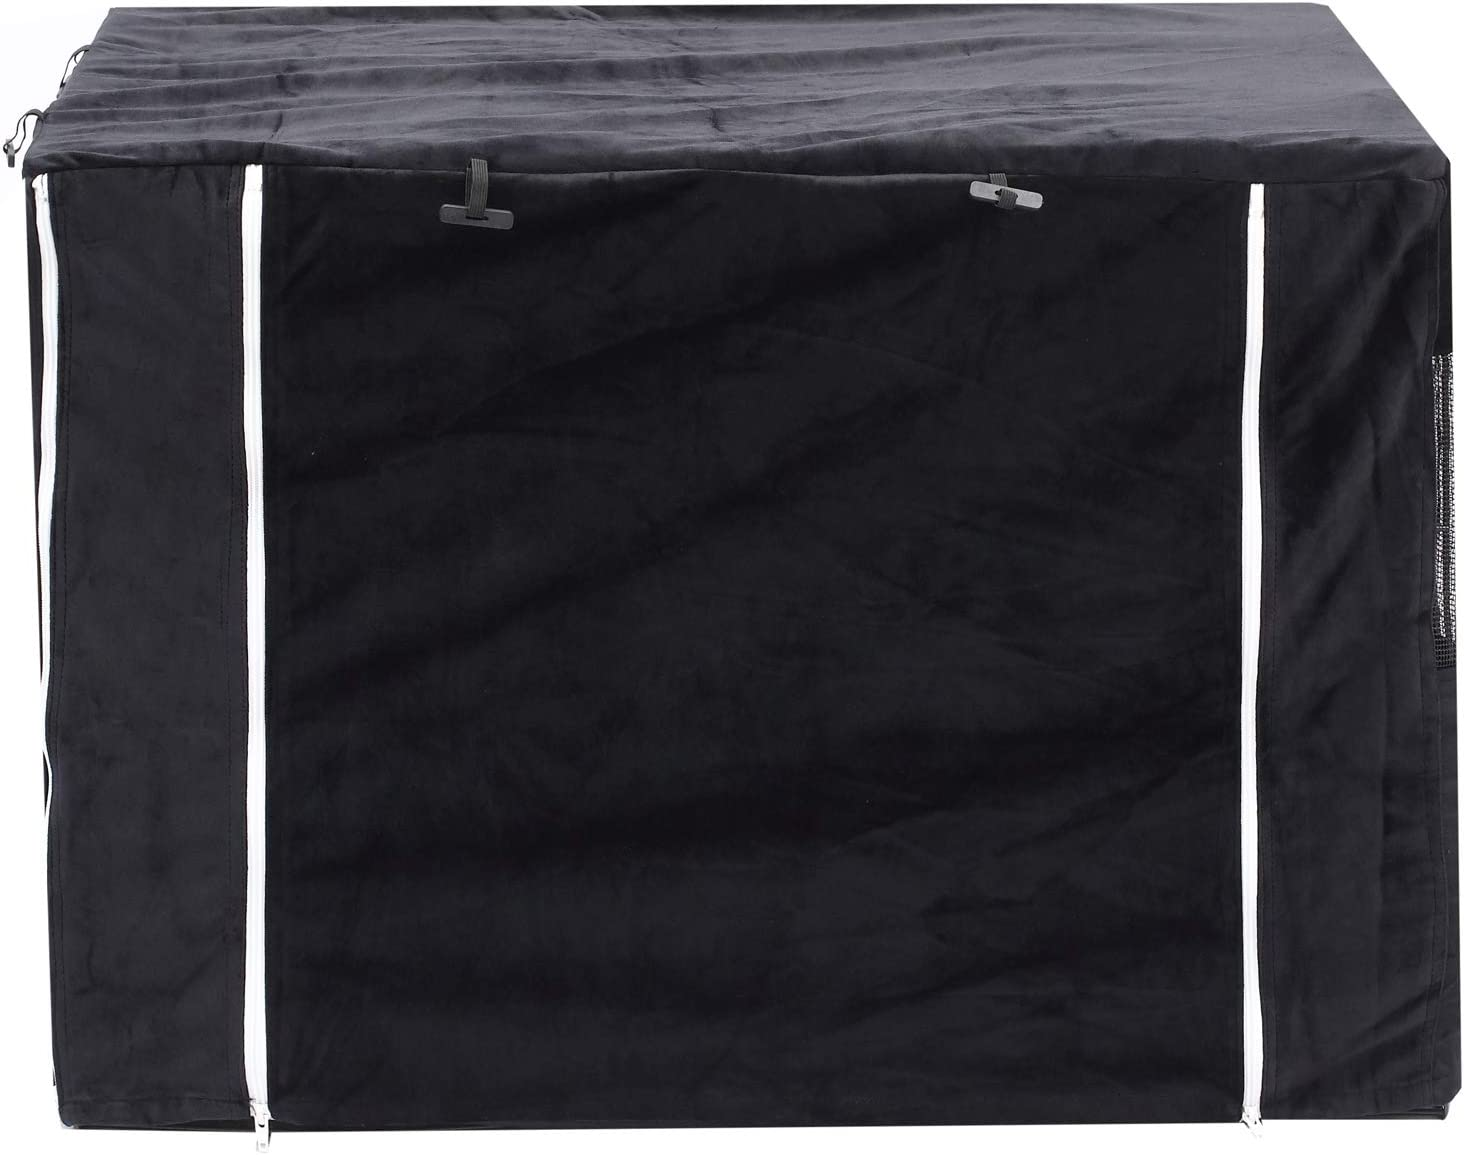 Polar Fleece Pet Kennel Cover Indoor Protection Black Cover only Brabtod 2 in 1 Dog Crate Cover for Wire Crates Cages Kennel Doubles as a Comfy Blanket XL